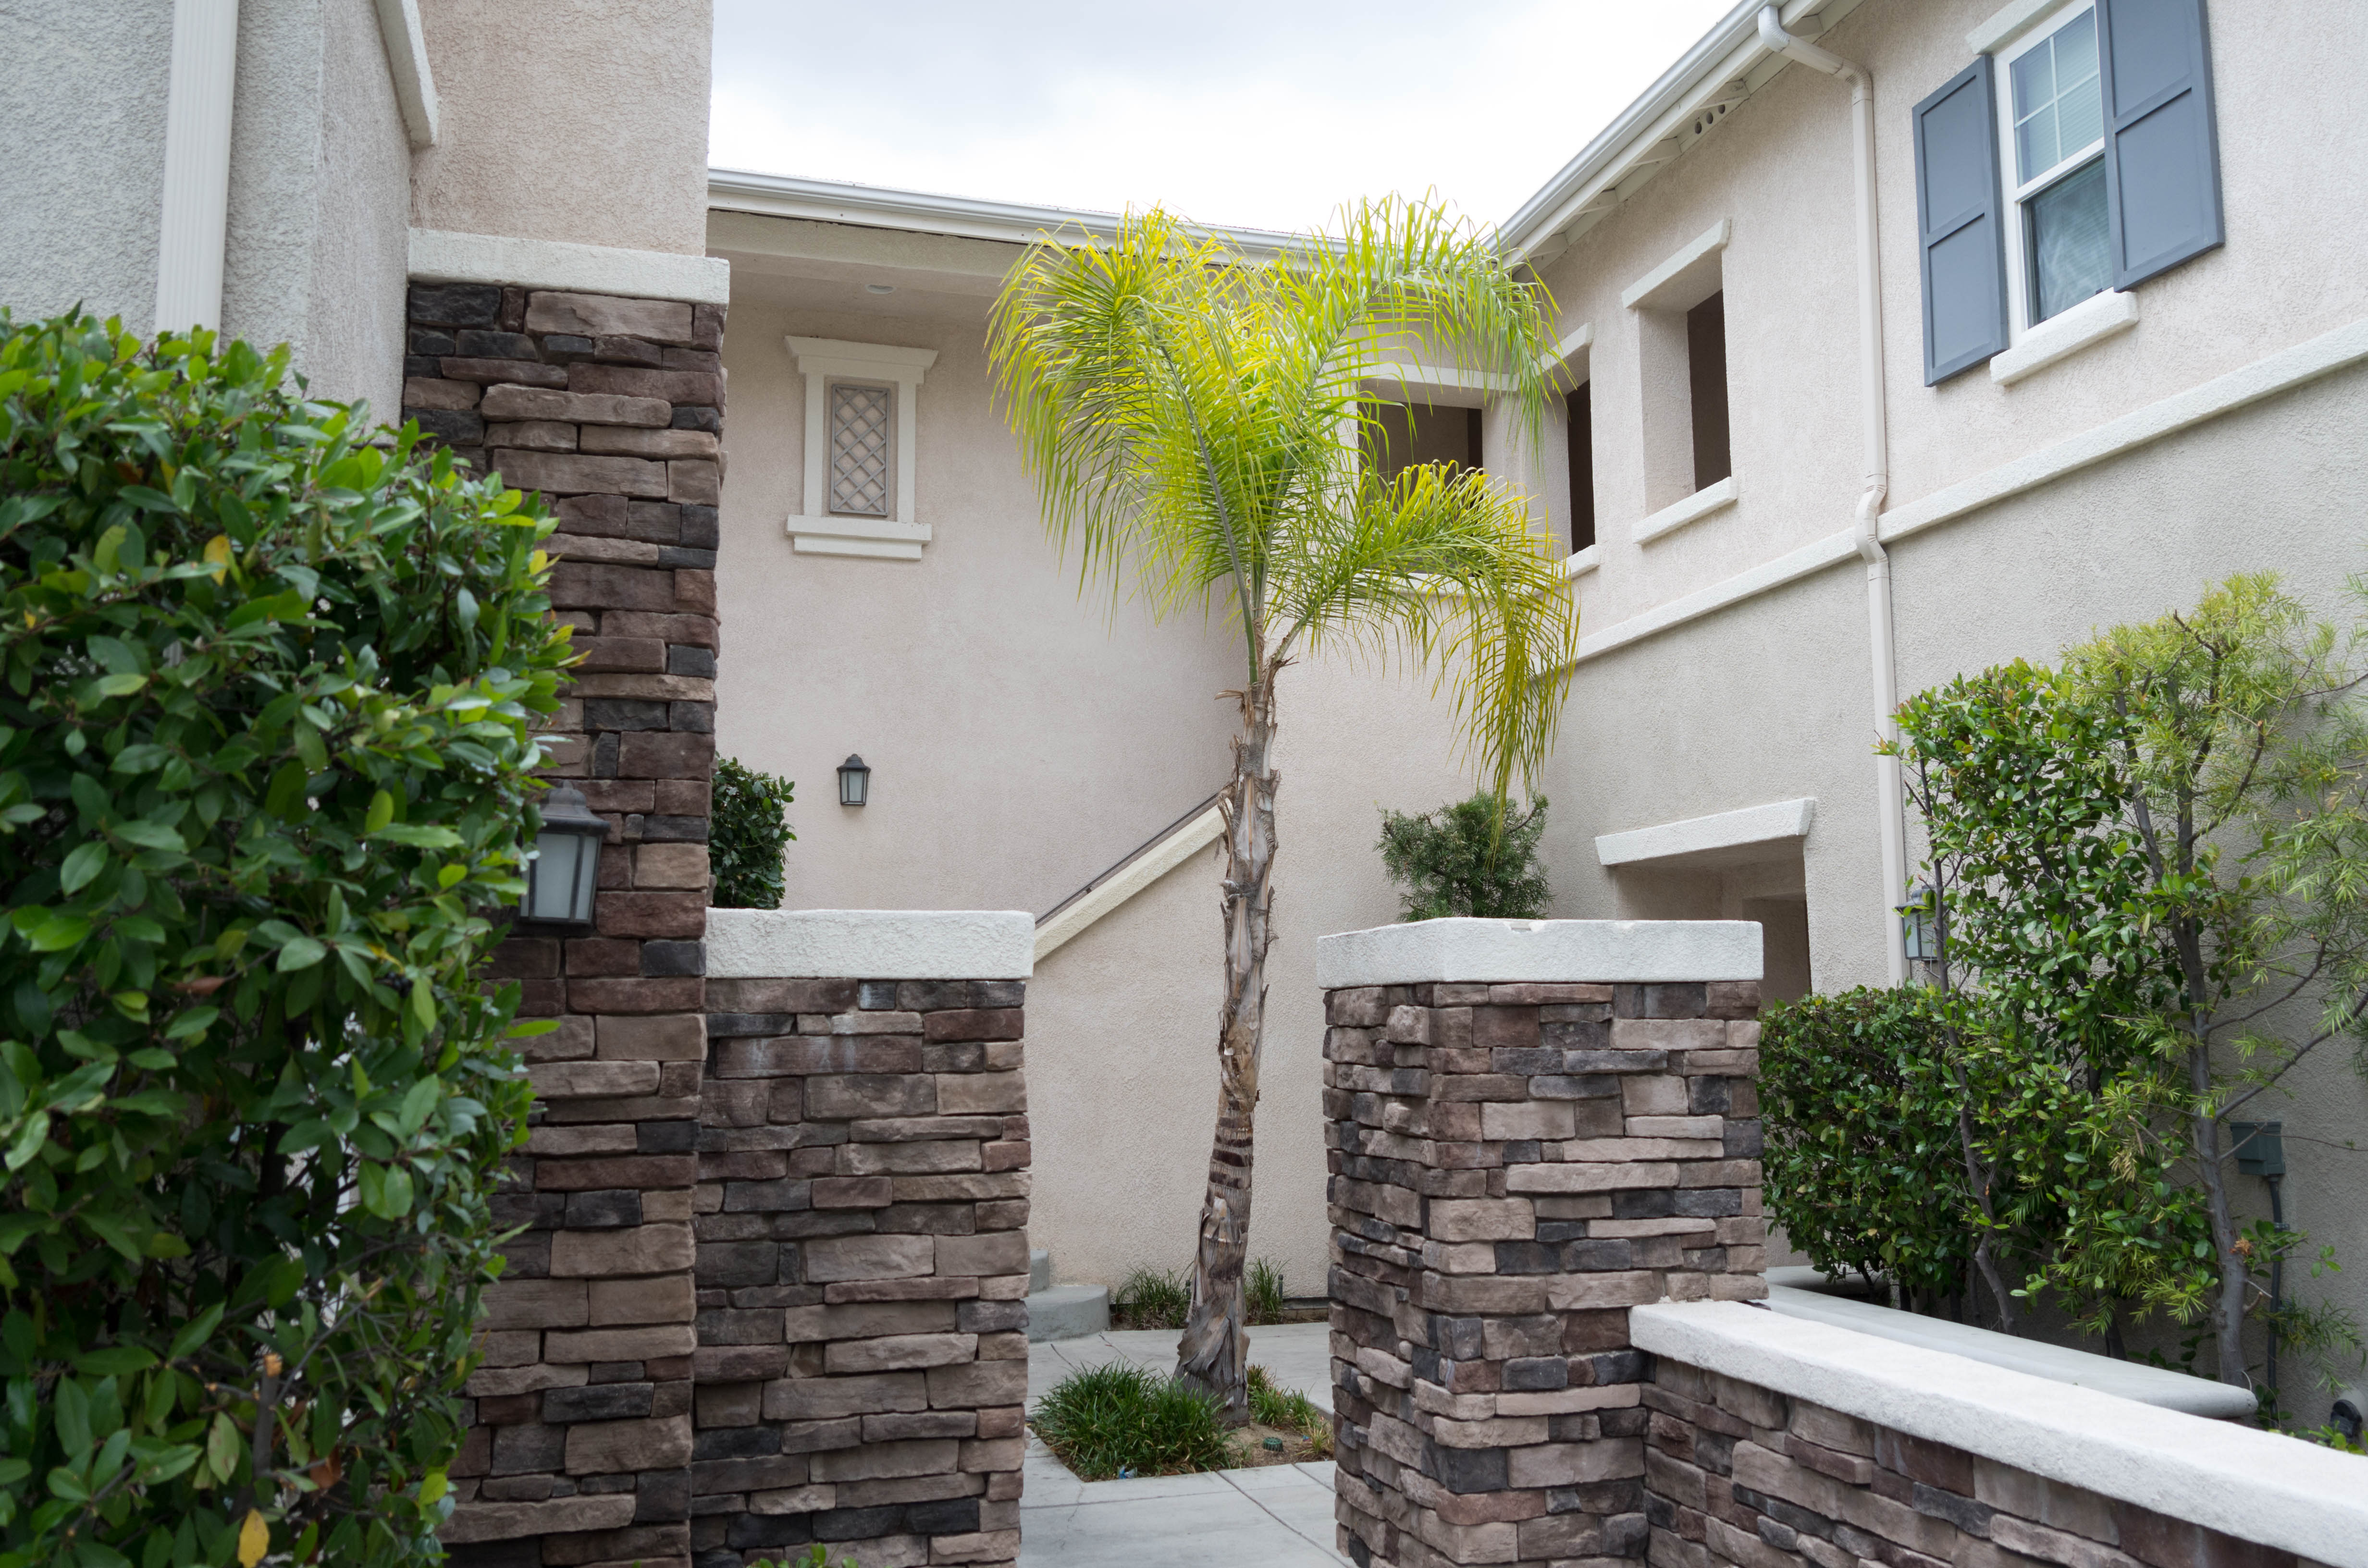 26472 Arboretum Way, Unit 2208, Murrieta CA